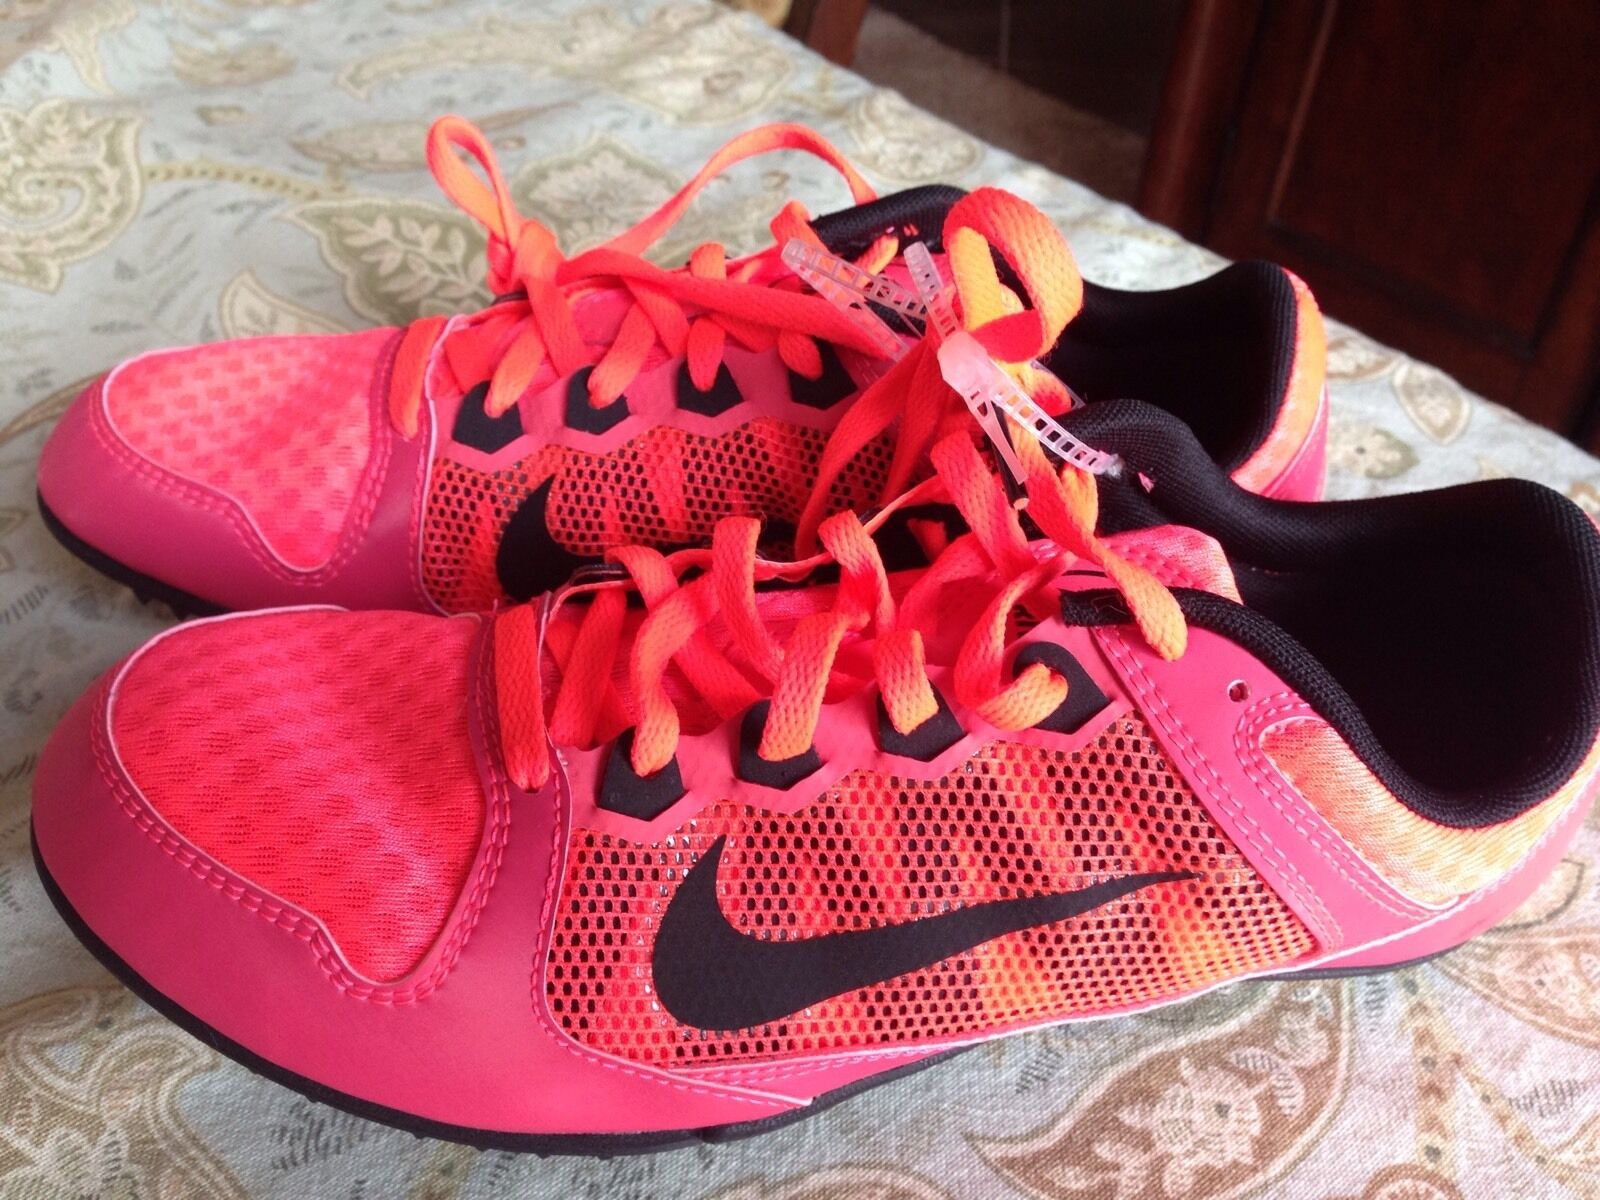 Nike Zoom Rival MD Infrared Pink Pink Infrared Mens Size 11.5 Multi Purpose Cleats Track 4911f1